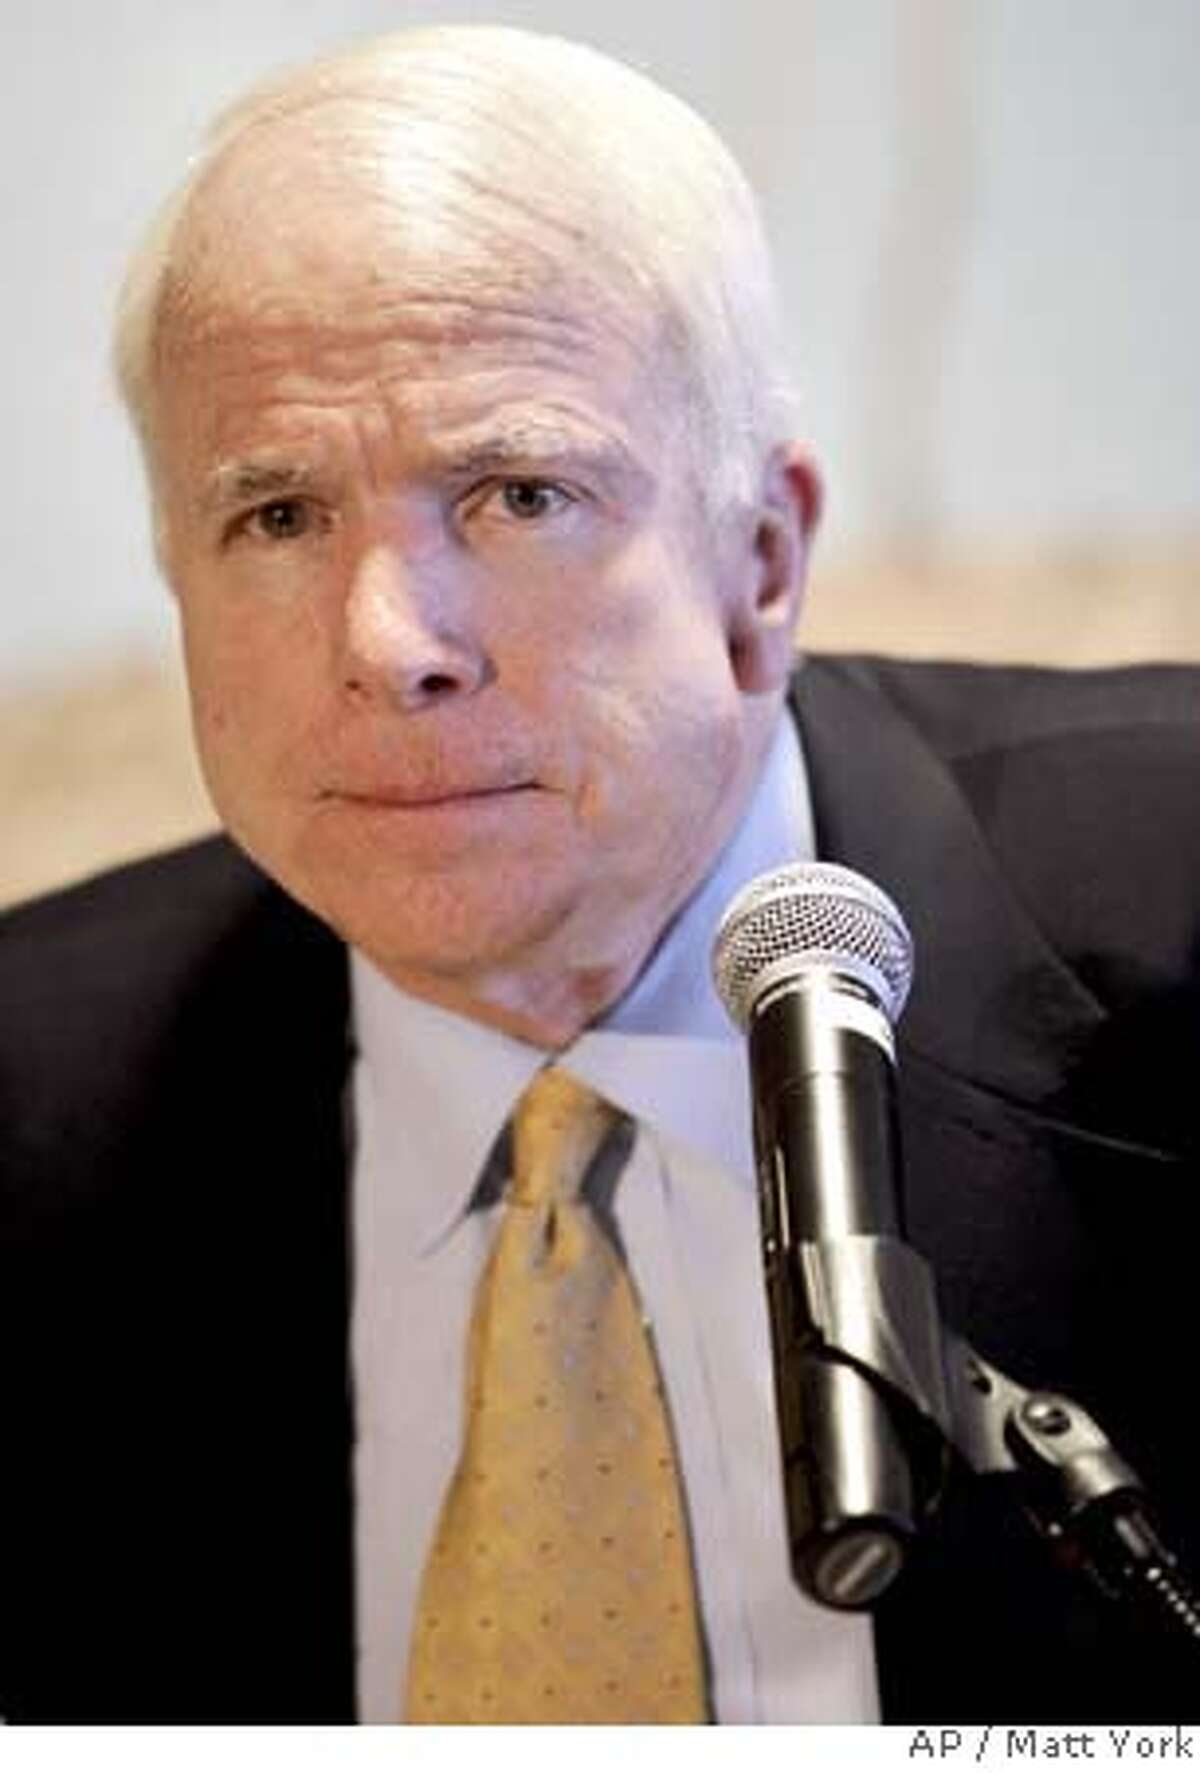 Republican presidential candidate Sen. John McCain, R-Ariz., takes a question at an immigration news conference Friday, May 18, 2007, at Sky Harbor International Airport in Phoenix. (AP Photo/Matt York)